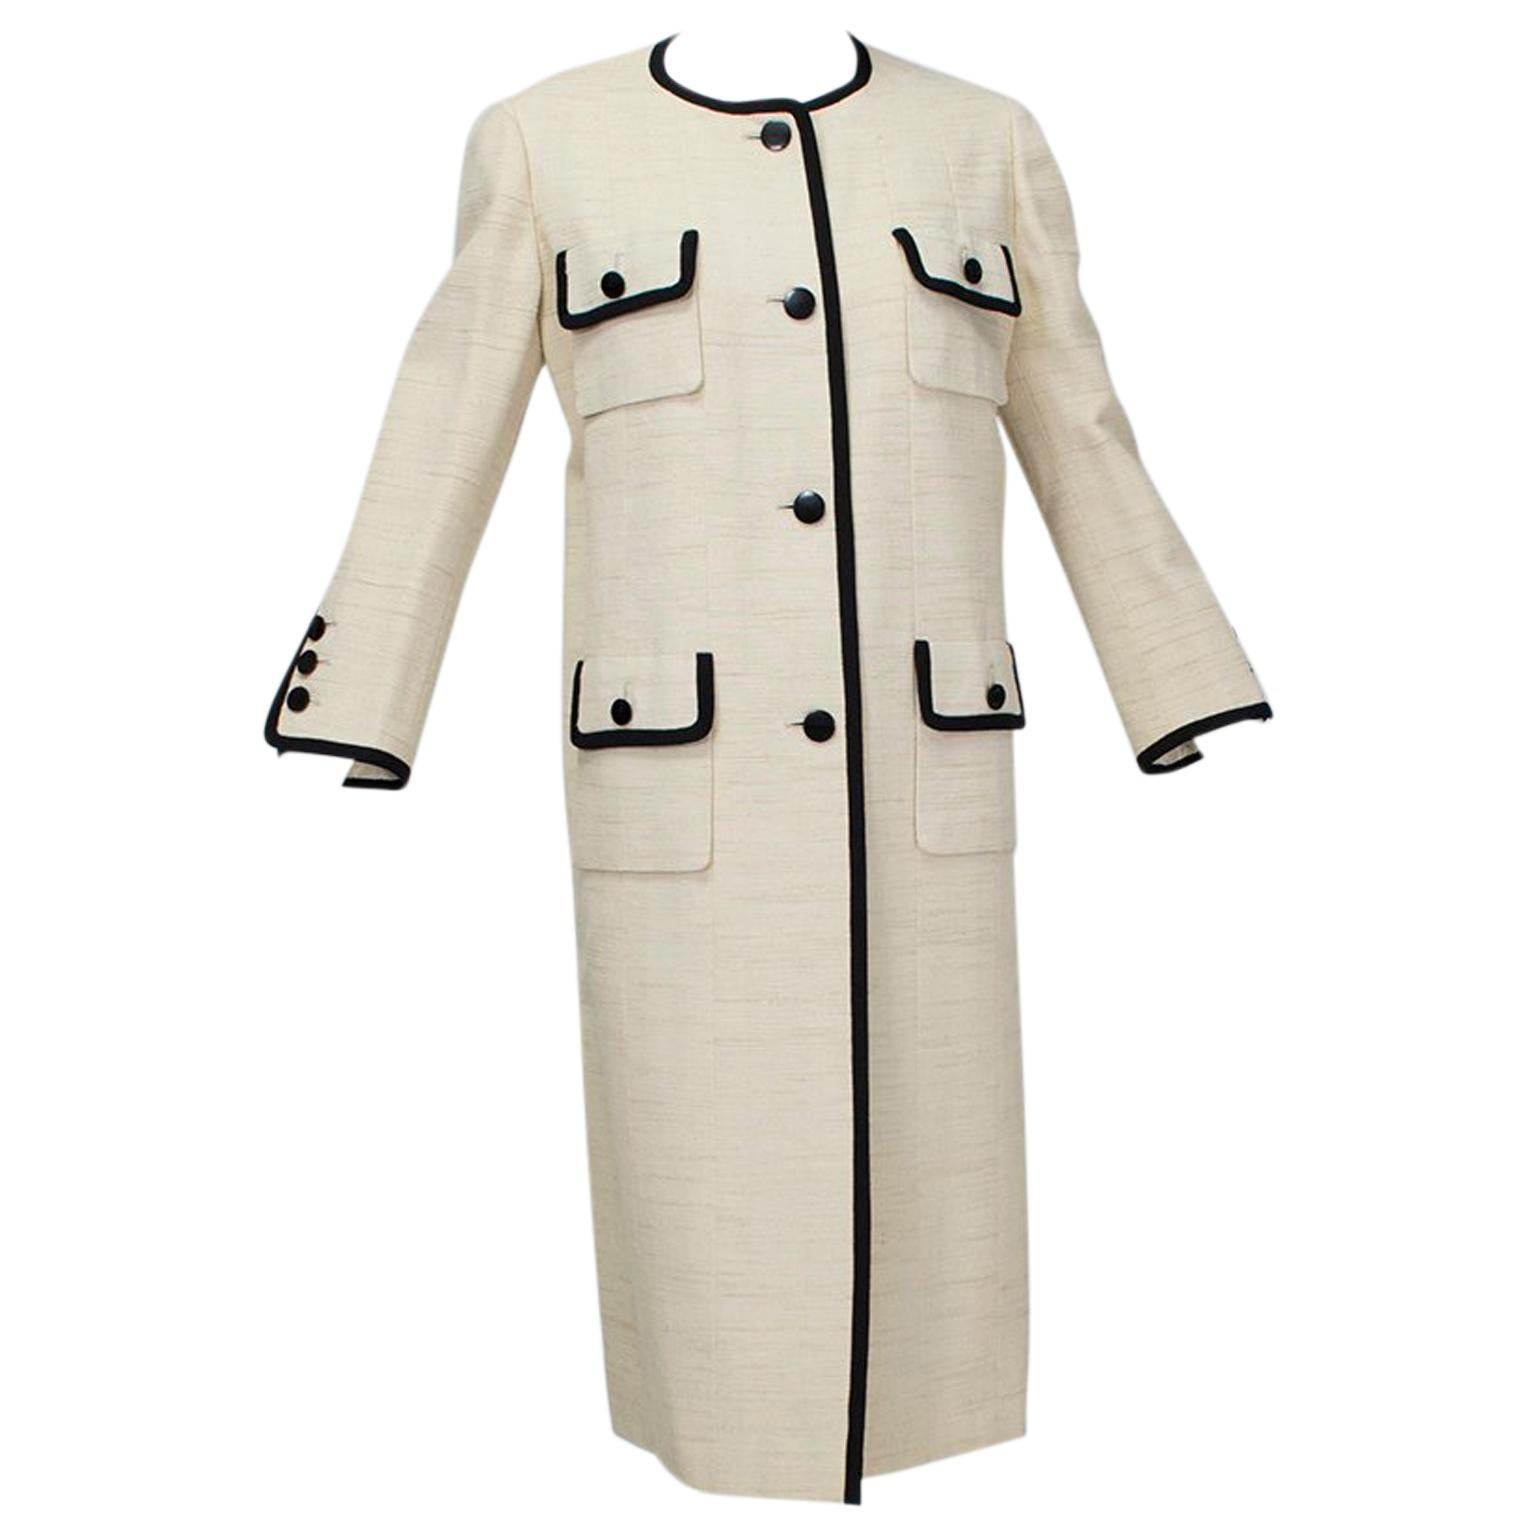 Traina-Norell Mod Ivory ¾ Coat with Contrast Piping - Medium, 1950s